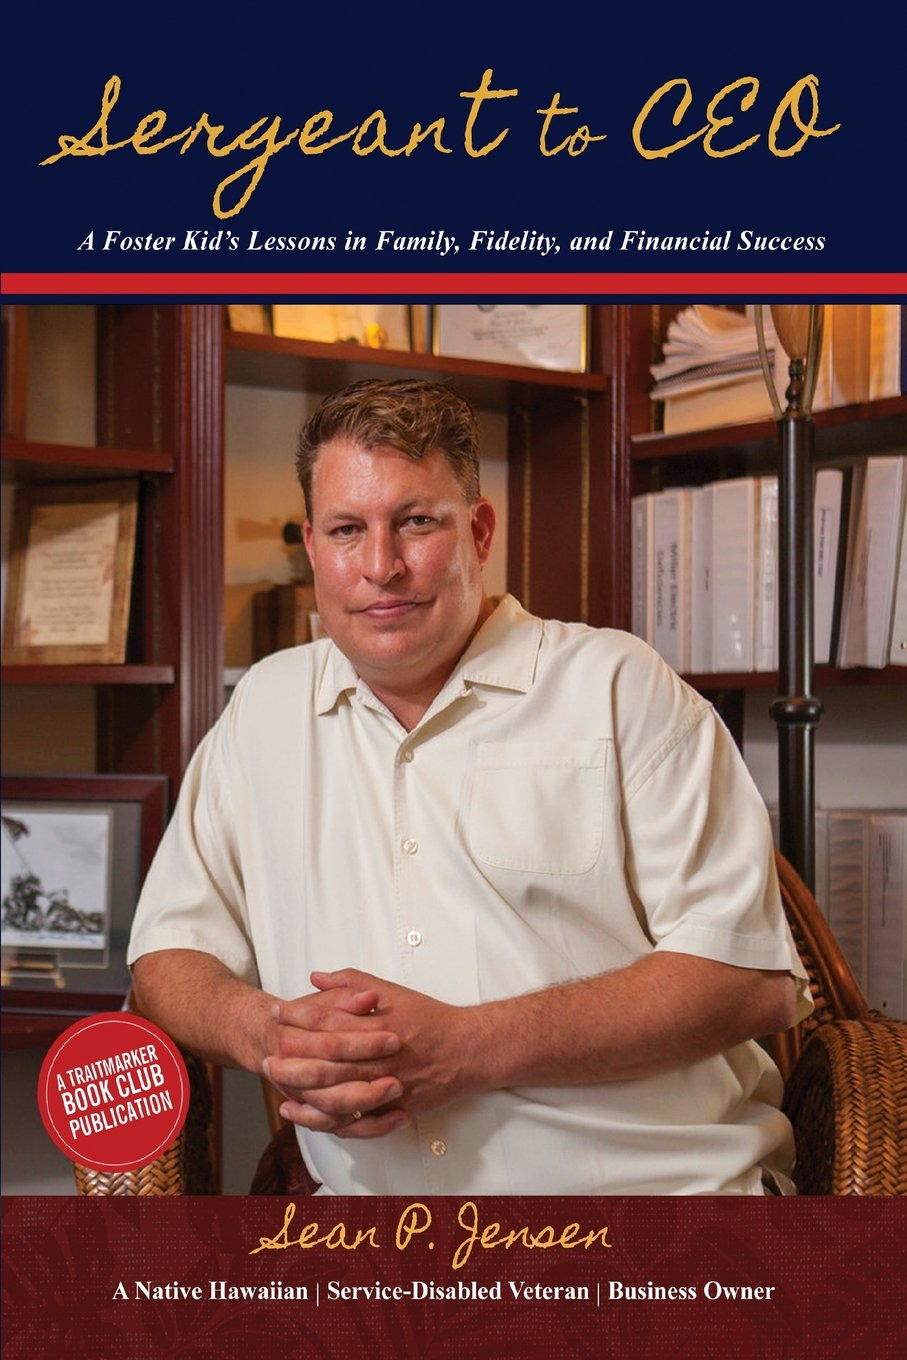 Download Sergeant to CEO: A Foster Kid's Lessons in Family, Fidelity, and Financial Success ebook